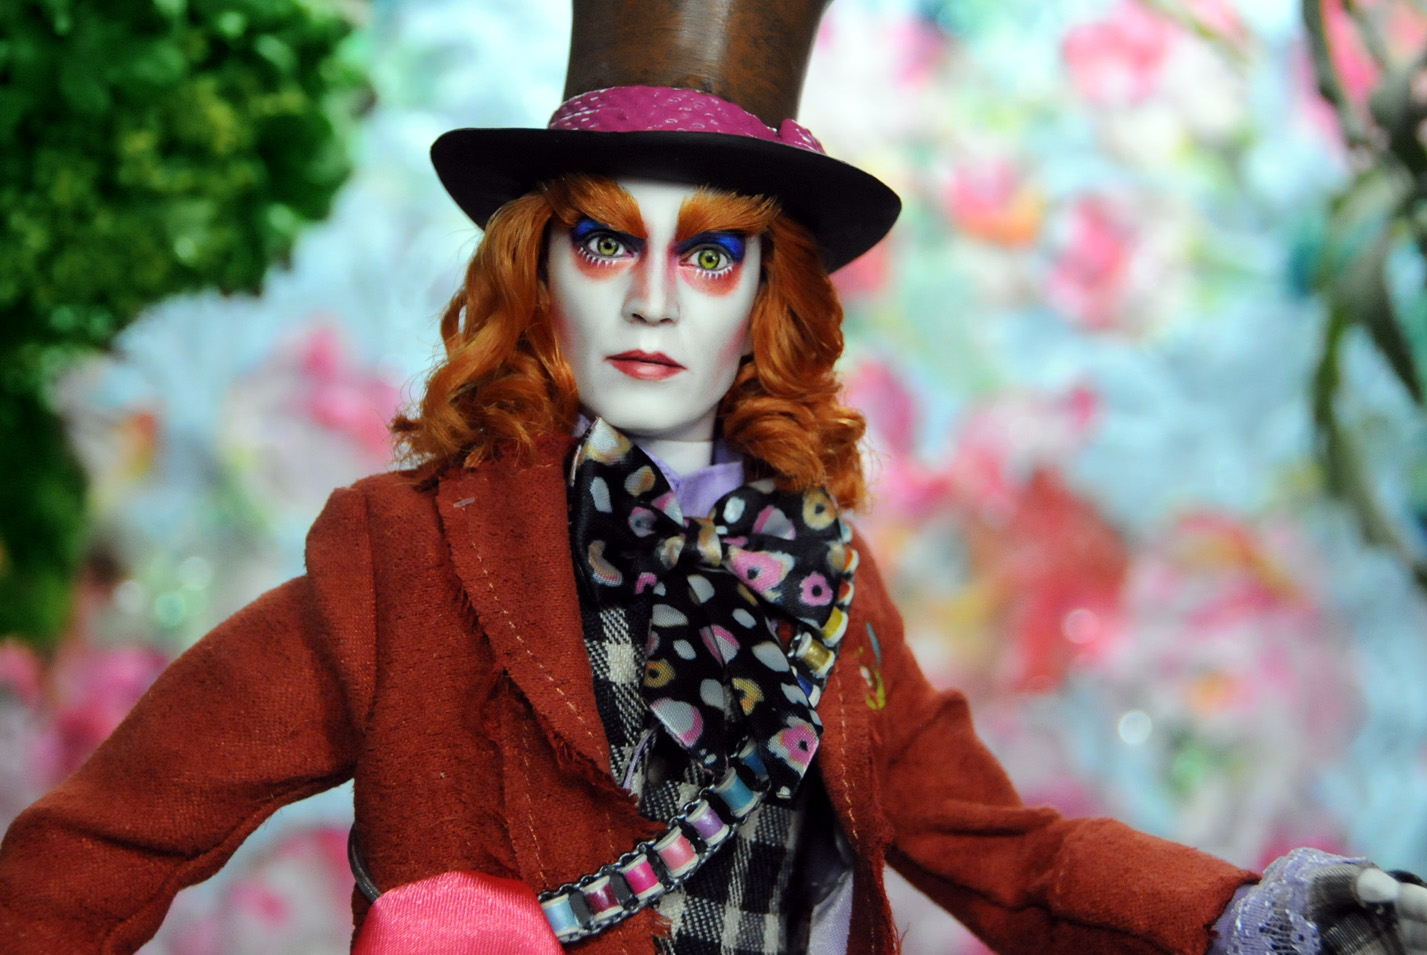 Hatter mad first johnny as playing depp depp